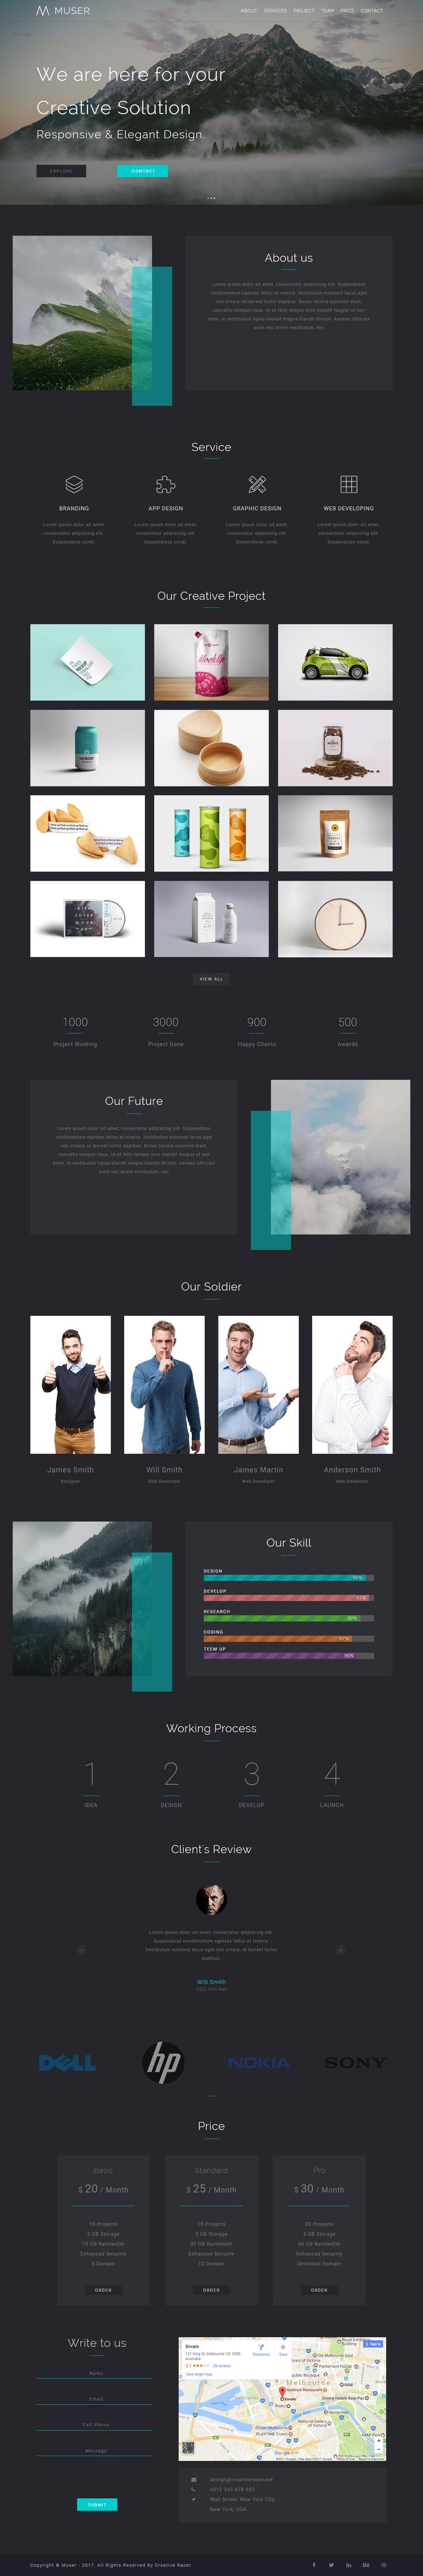 The 10 best Creative Muse Website Template images on Pinterest ...